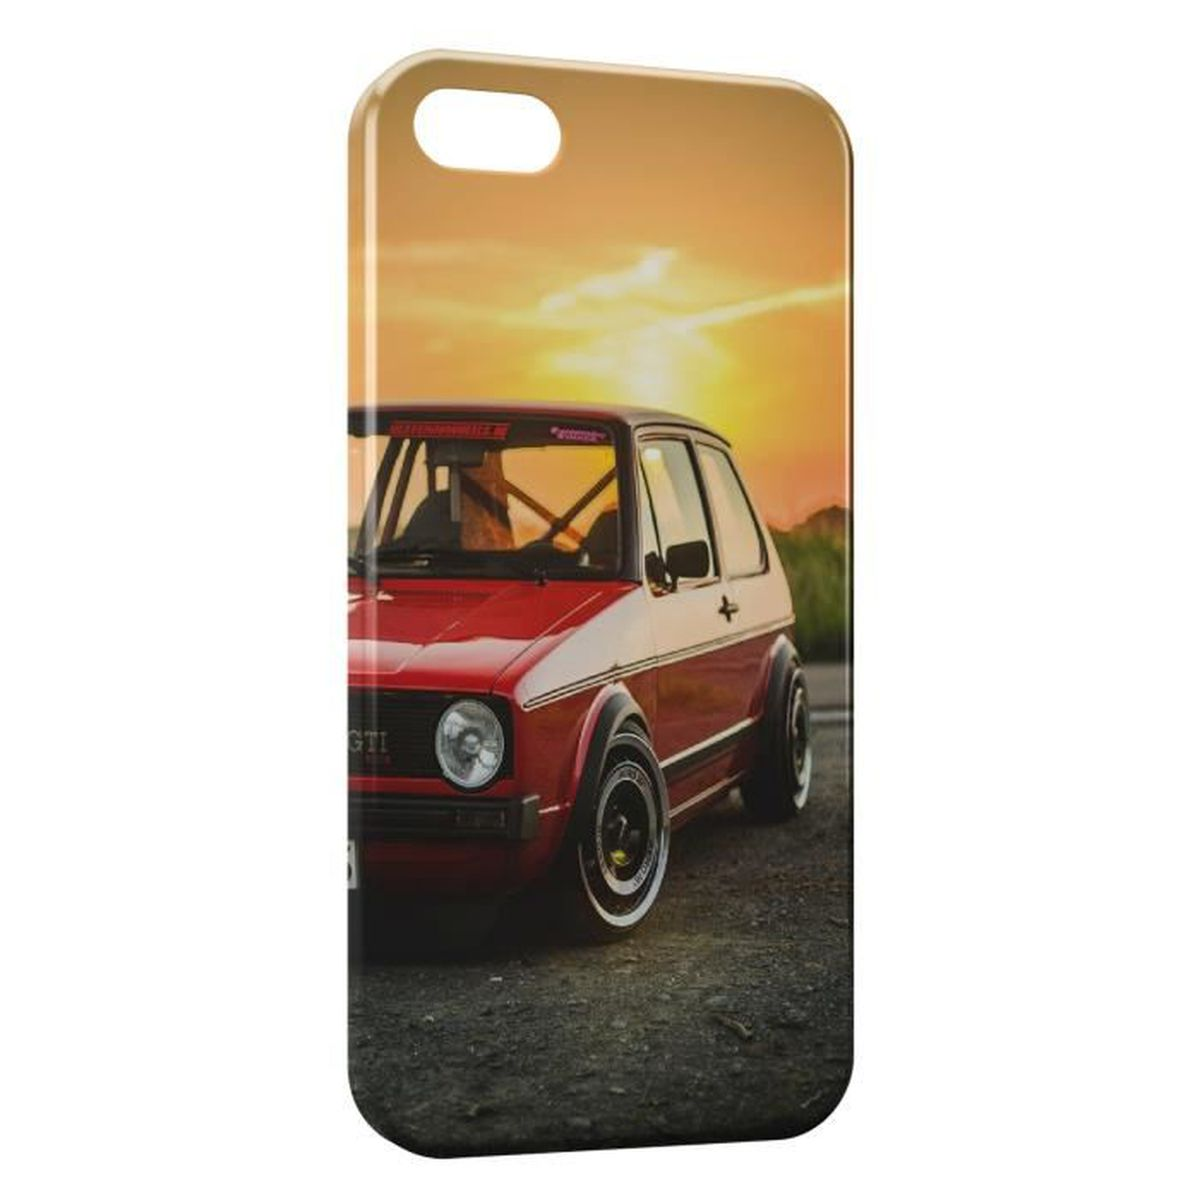 coque iphone 7 golf 3